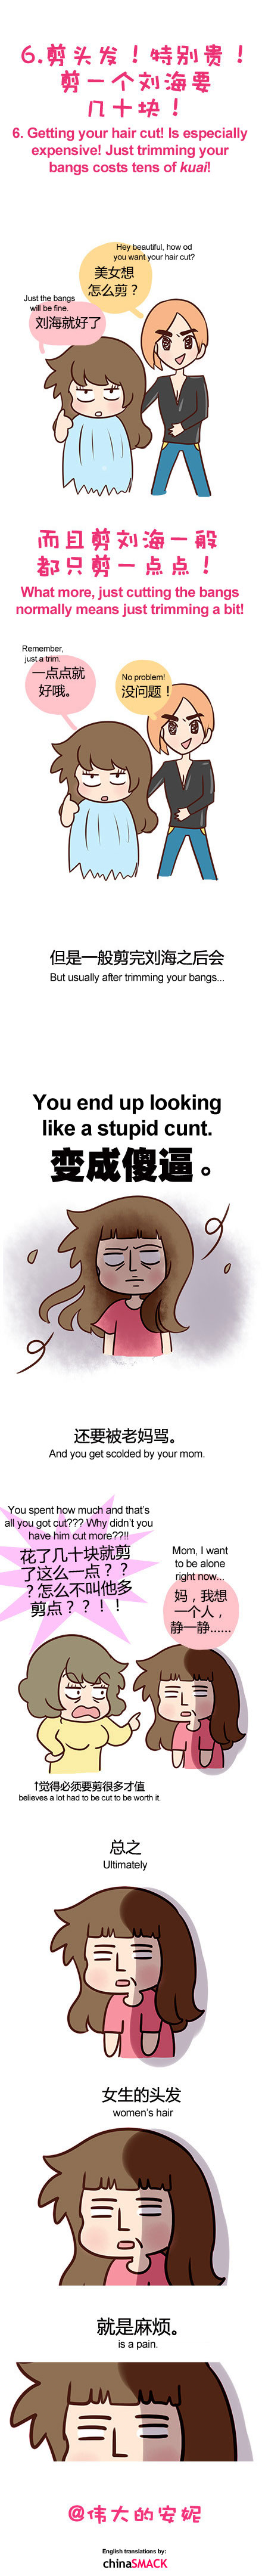 chinese-weibo-greatanny-hair-troubles-annoyances-for-women-06-english-translation